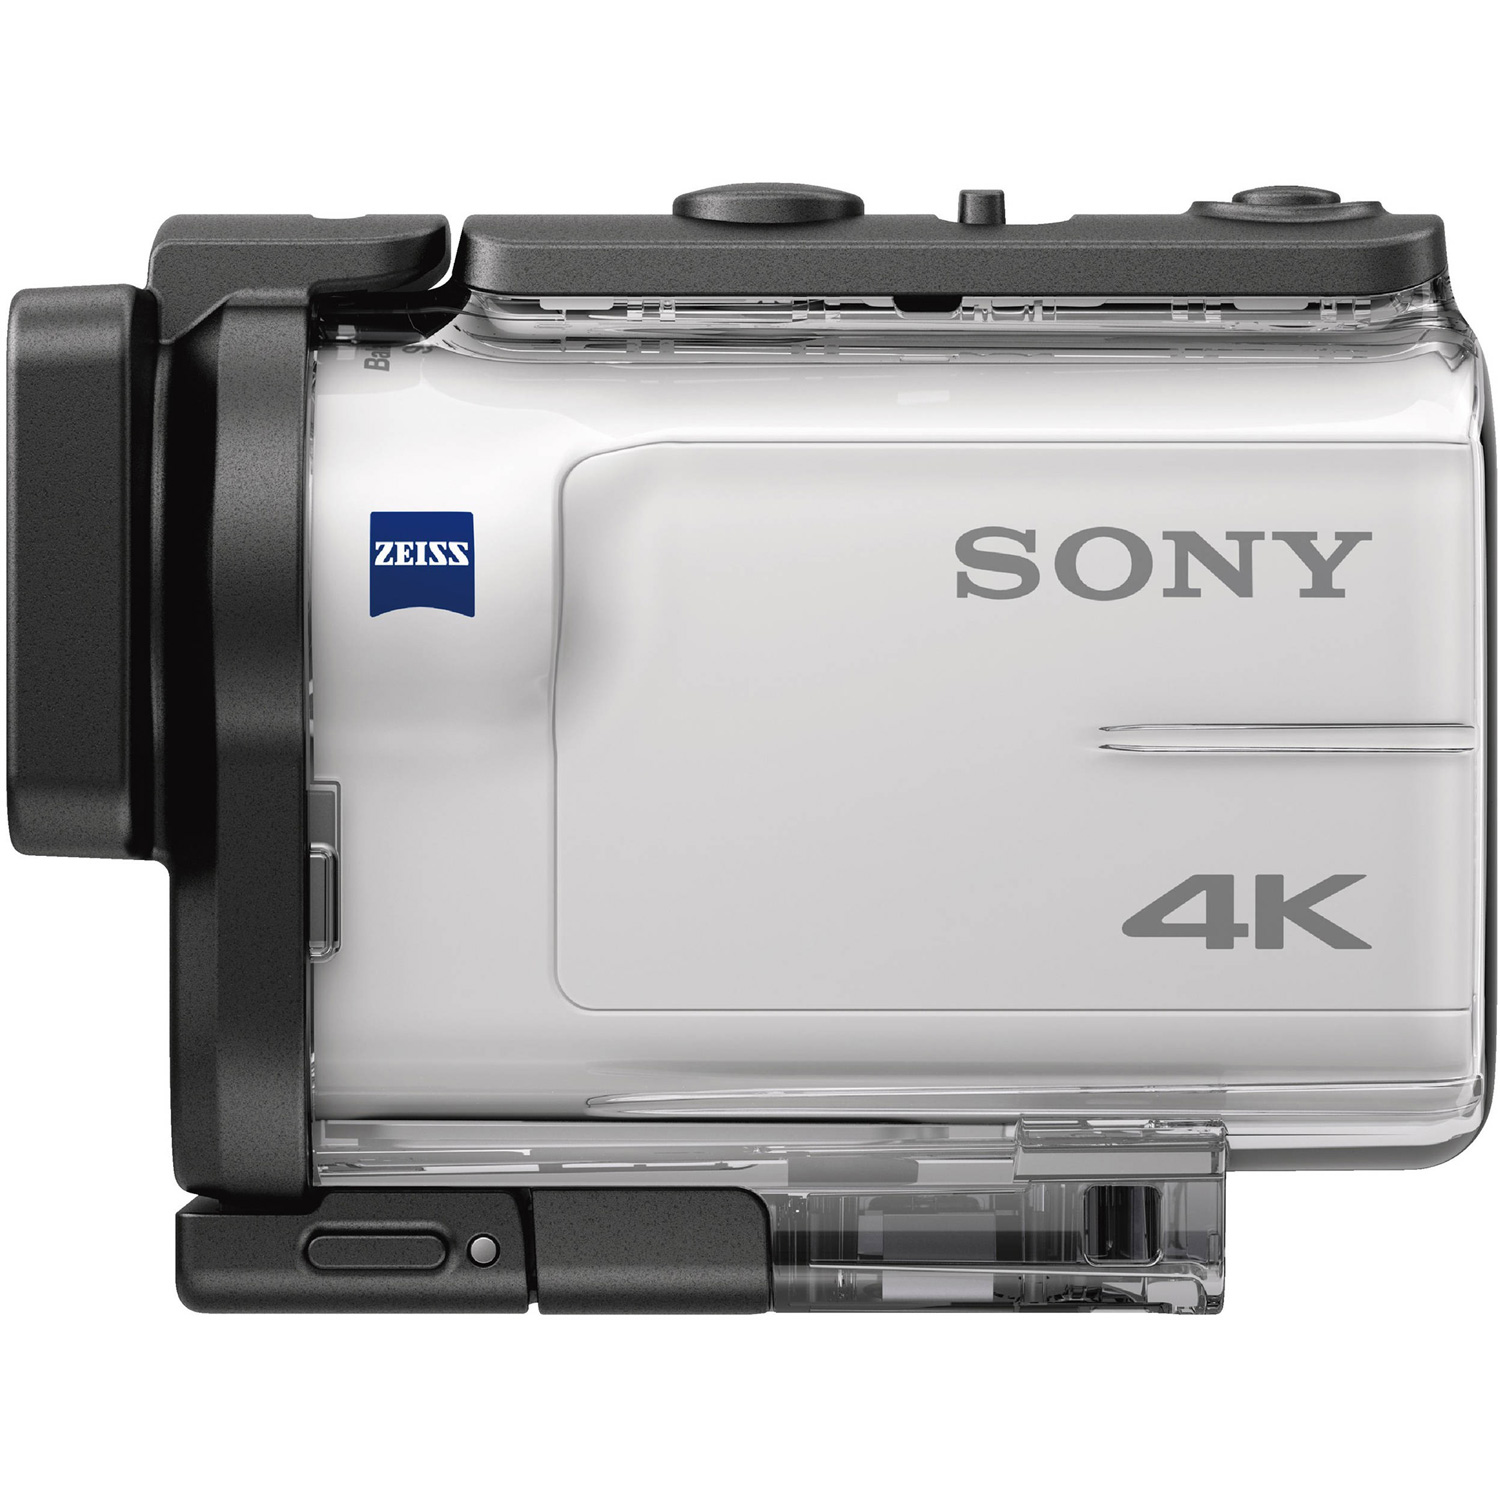 Click here for FDR-X3000 Action Camera prices